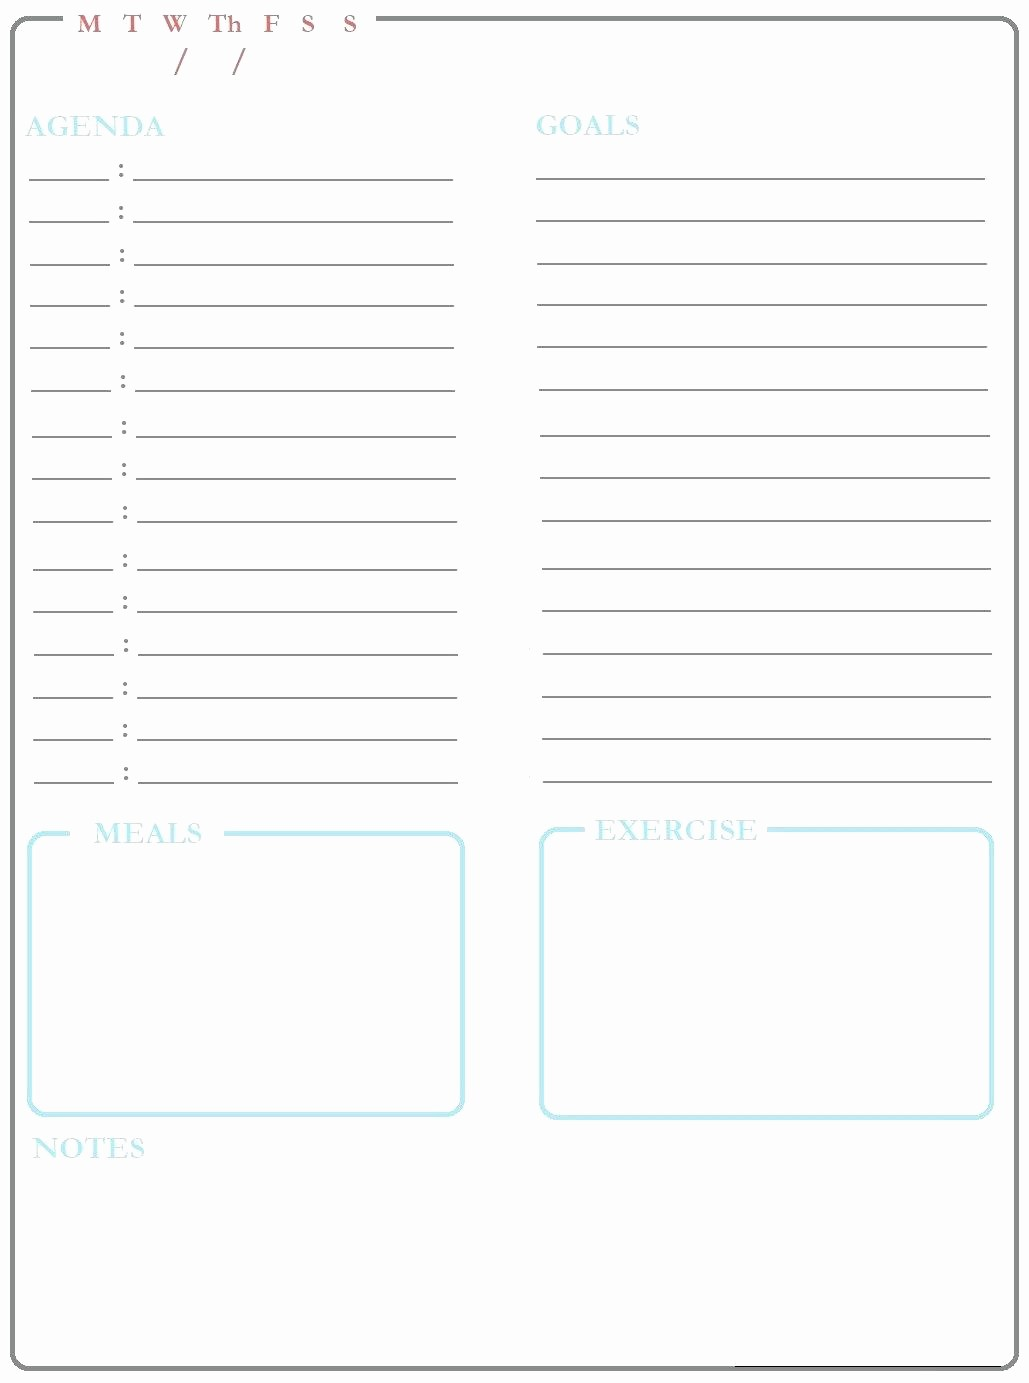 Daily Planner Template Google Docs Lovely 99 Daily Schedule Template Google Docs Free Work